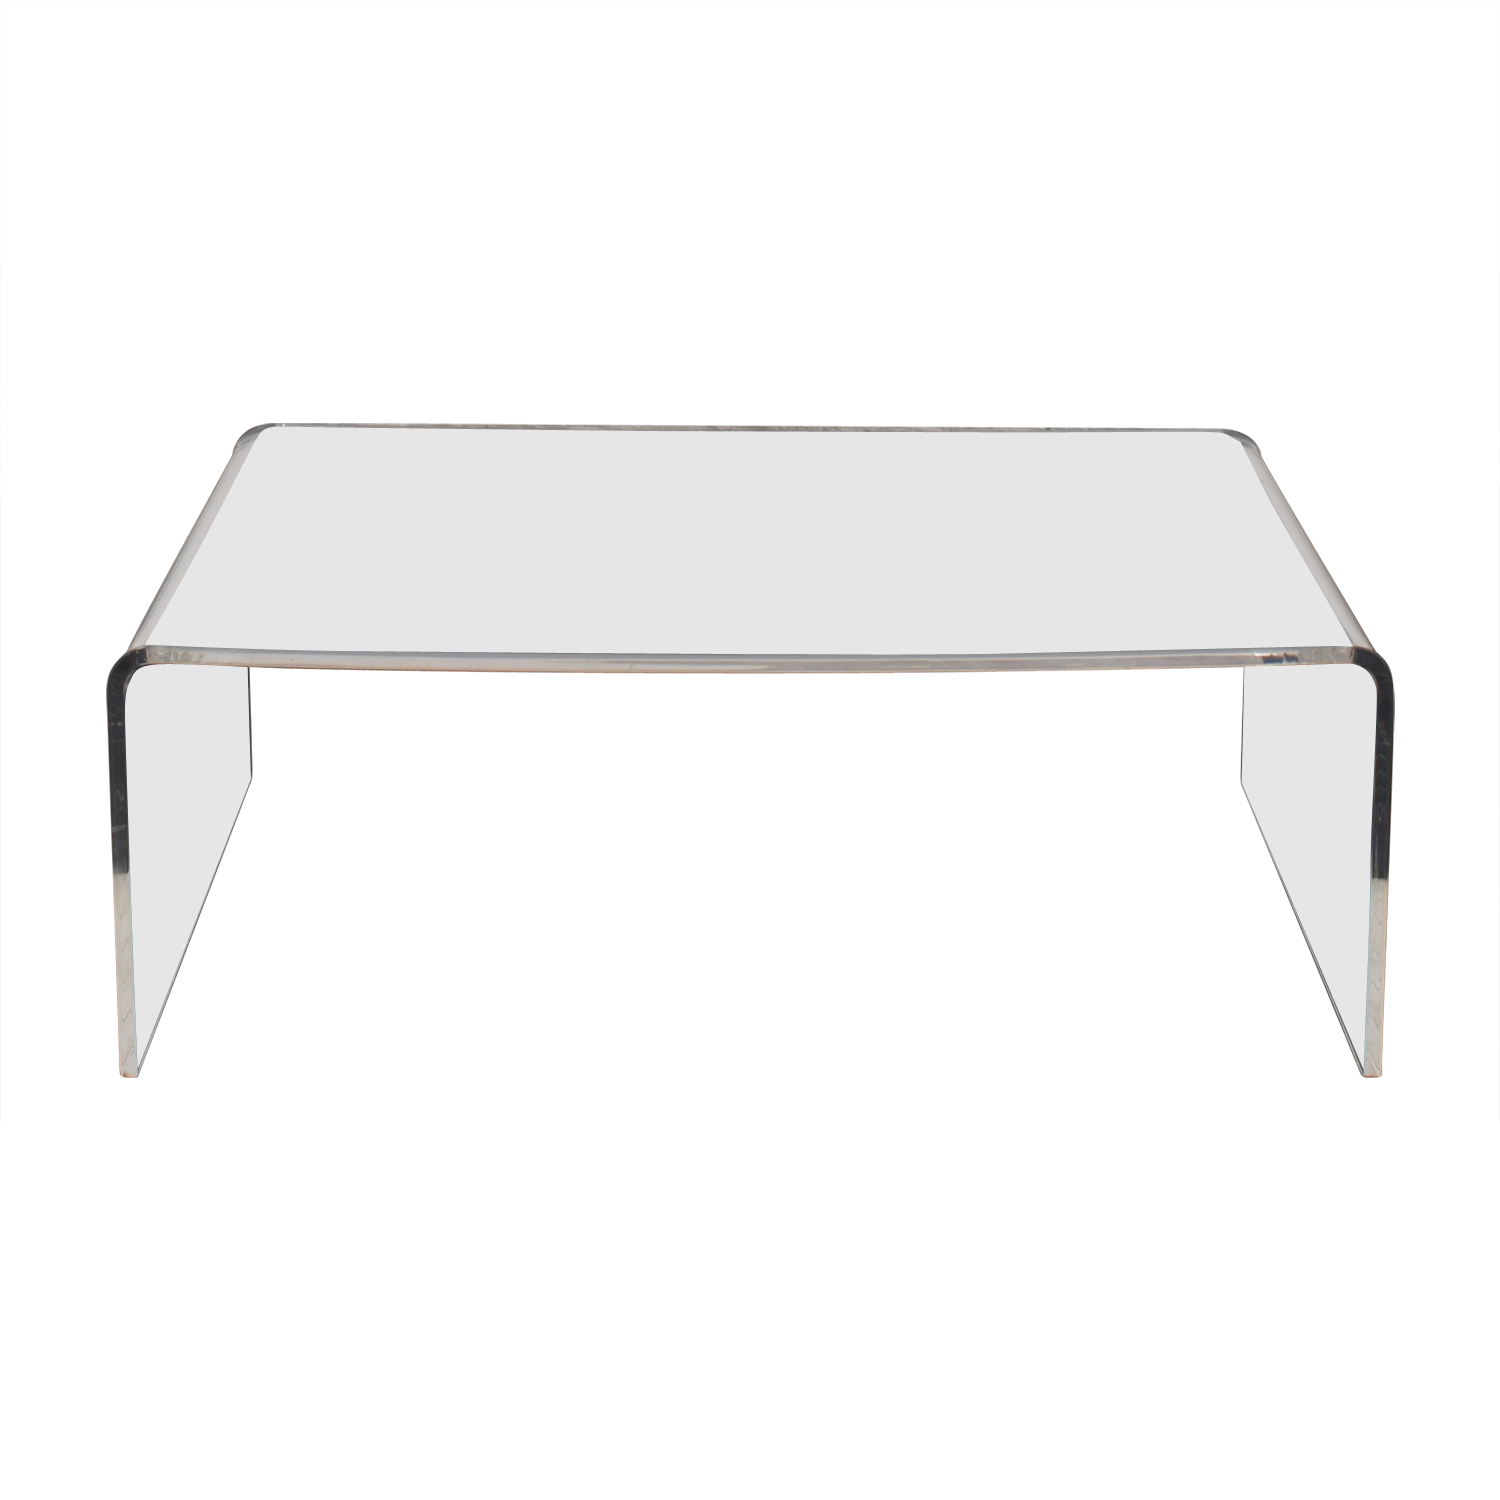 70 off cb2 cb2 acrylic ghost coffee table tables